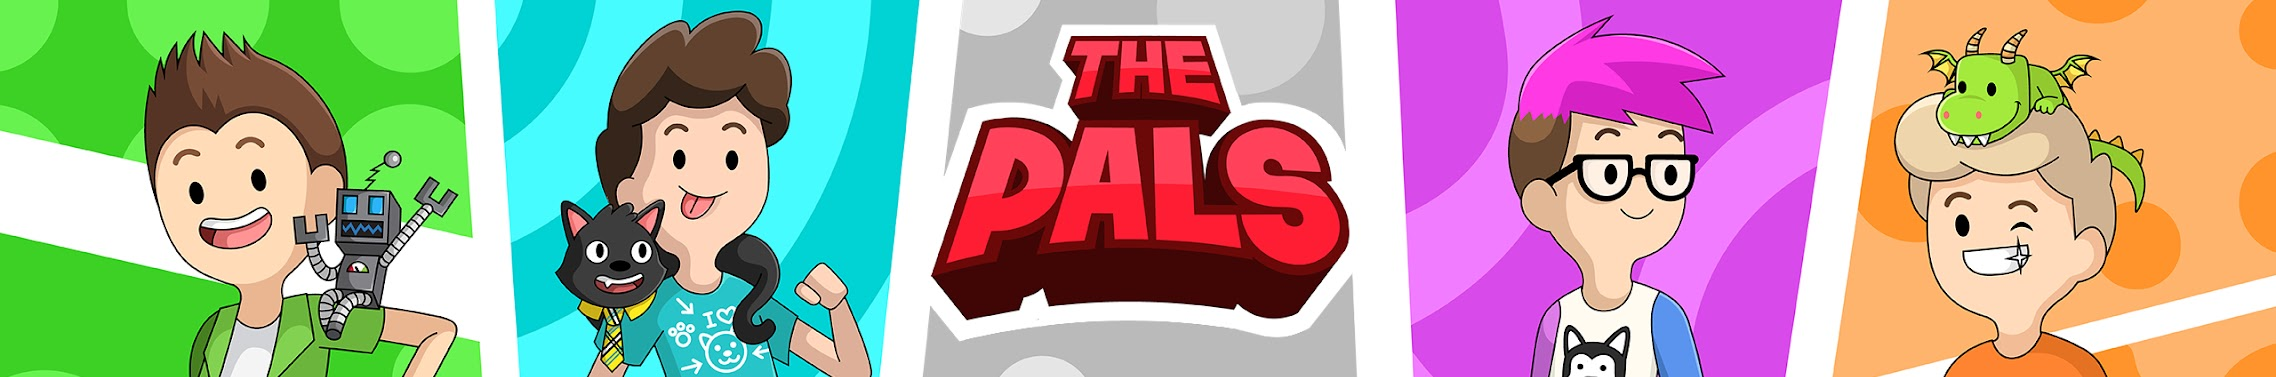 The Pals Youtube Channel Analytics And Report Powered By